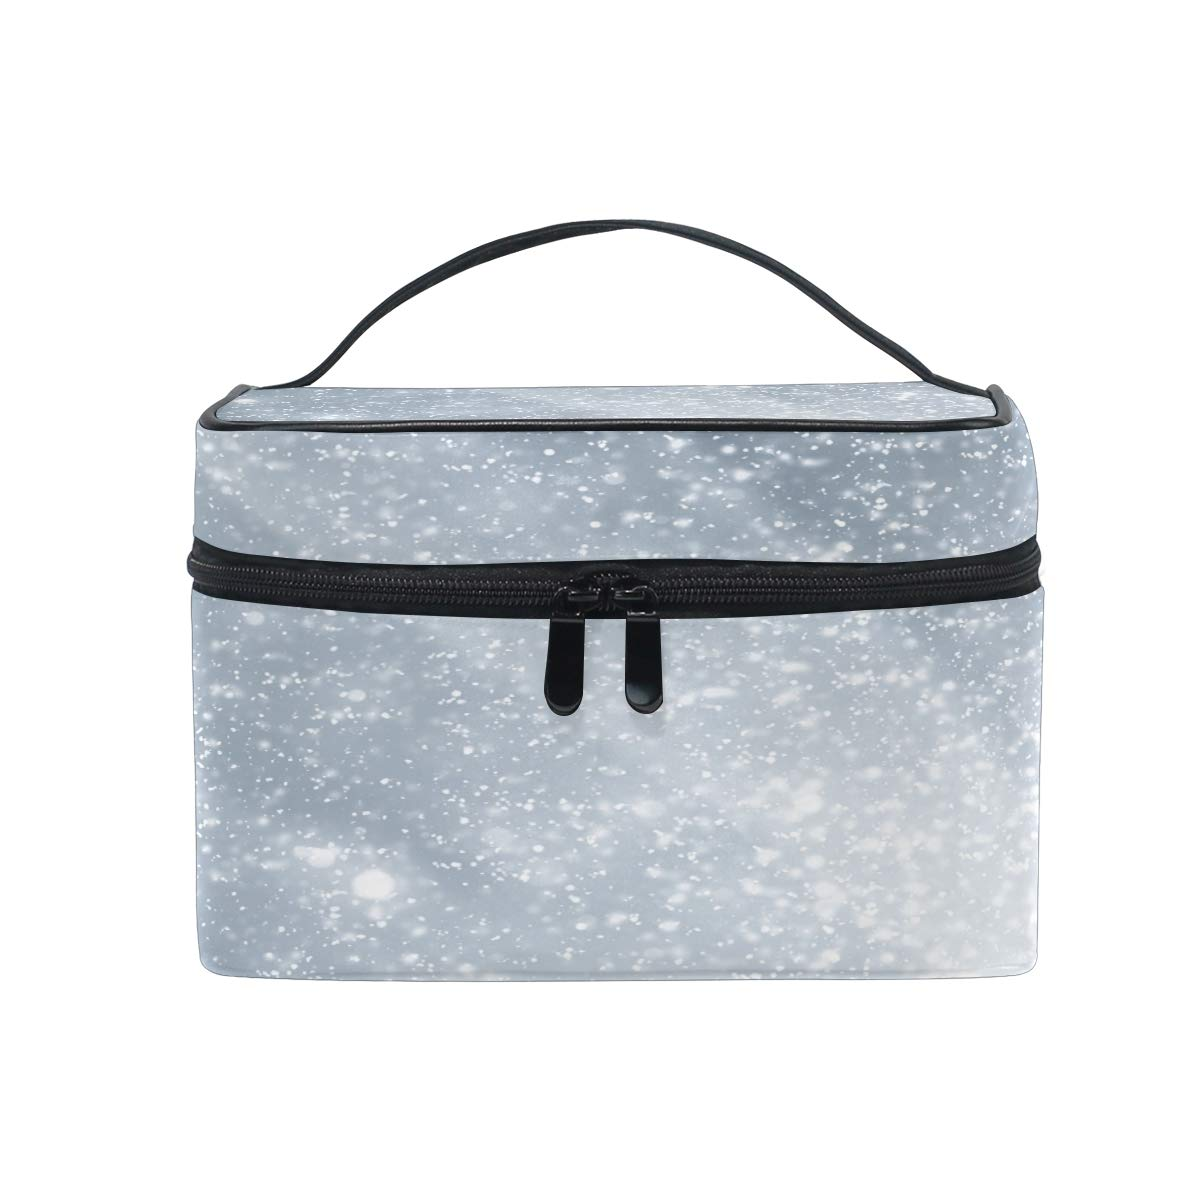 Makeup Bag Abstract Silver Background White Particles Trendy Cosmetic Bag Travel Toiletry Bag Cosmetic Train Case Makeup Tote Make-Up Organizer Box Storage With Mesh Bag Brush Holder for Women Kids Me